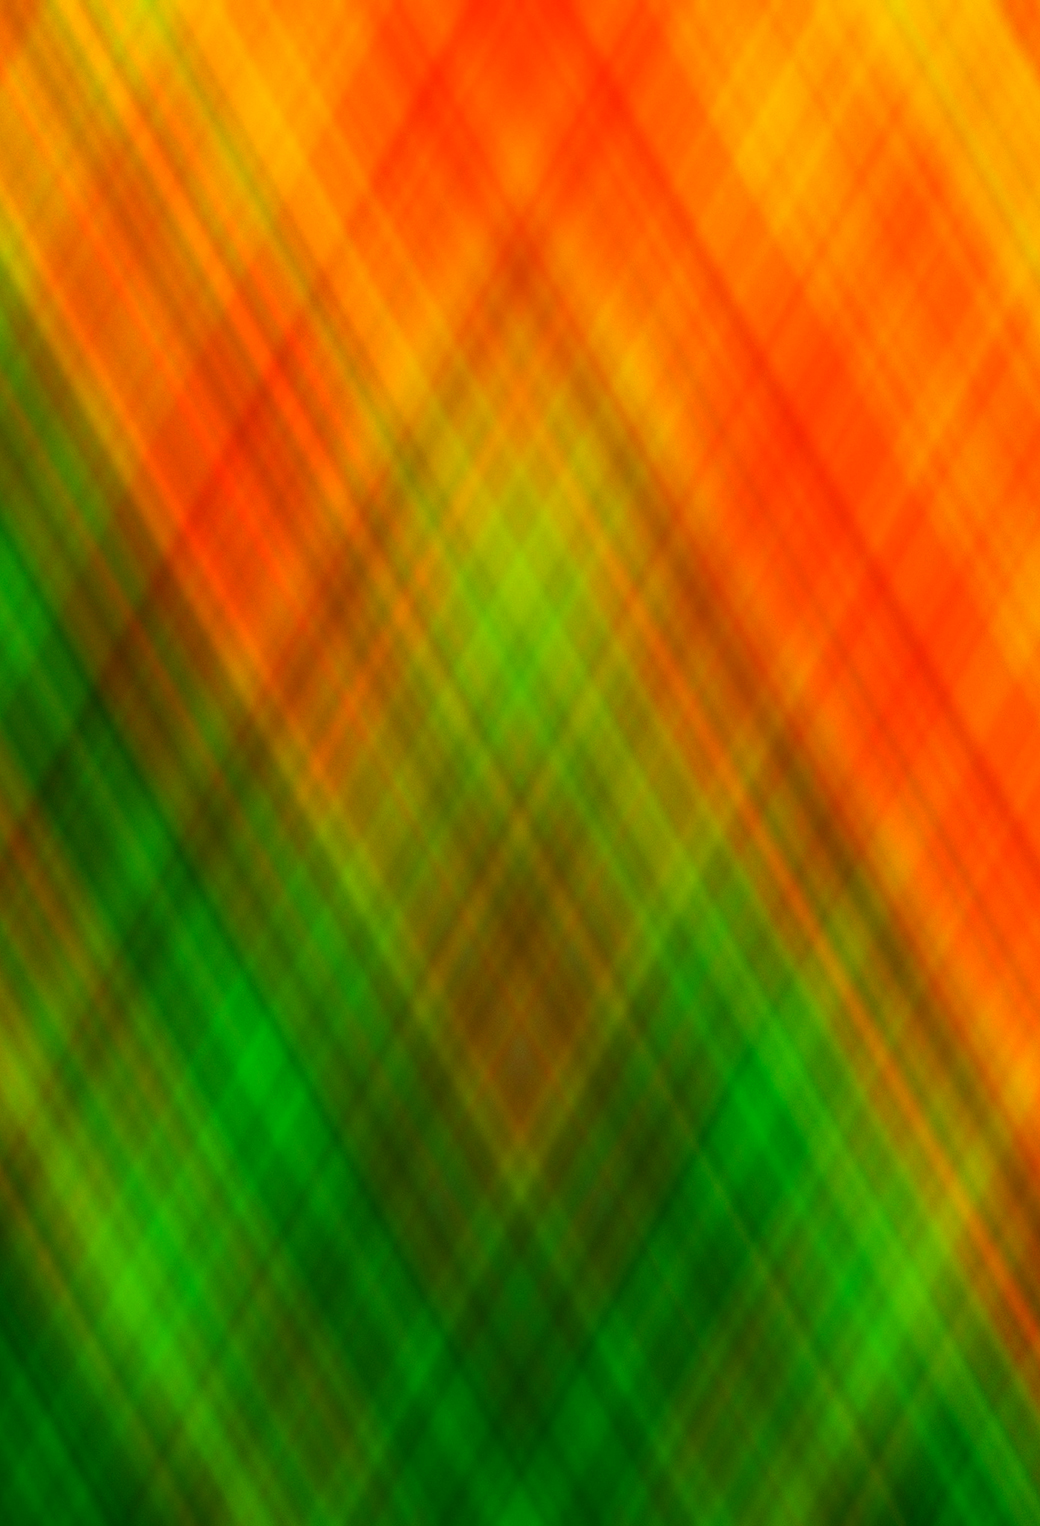 Orange Green 3Wallppaers iPhone Parallax Orange Green